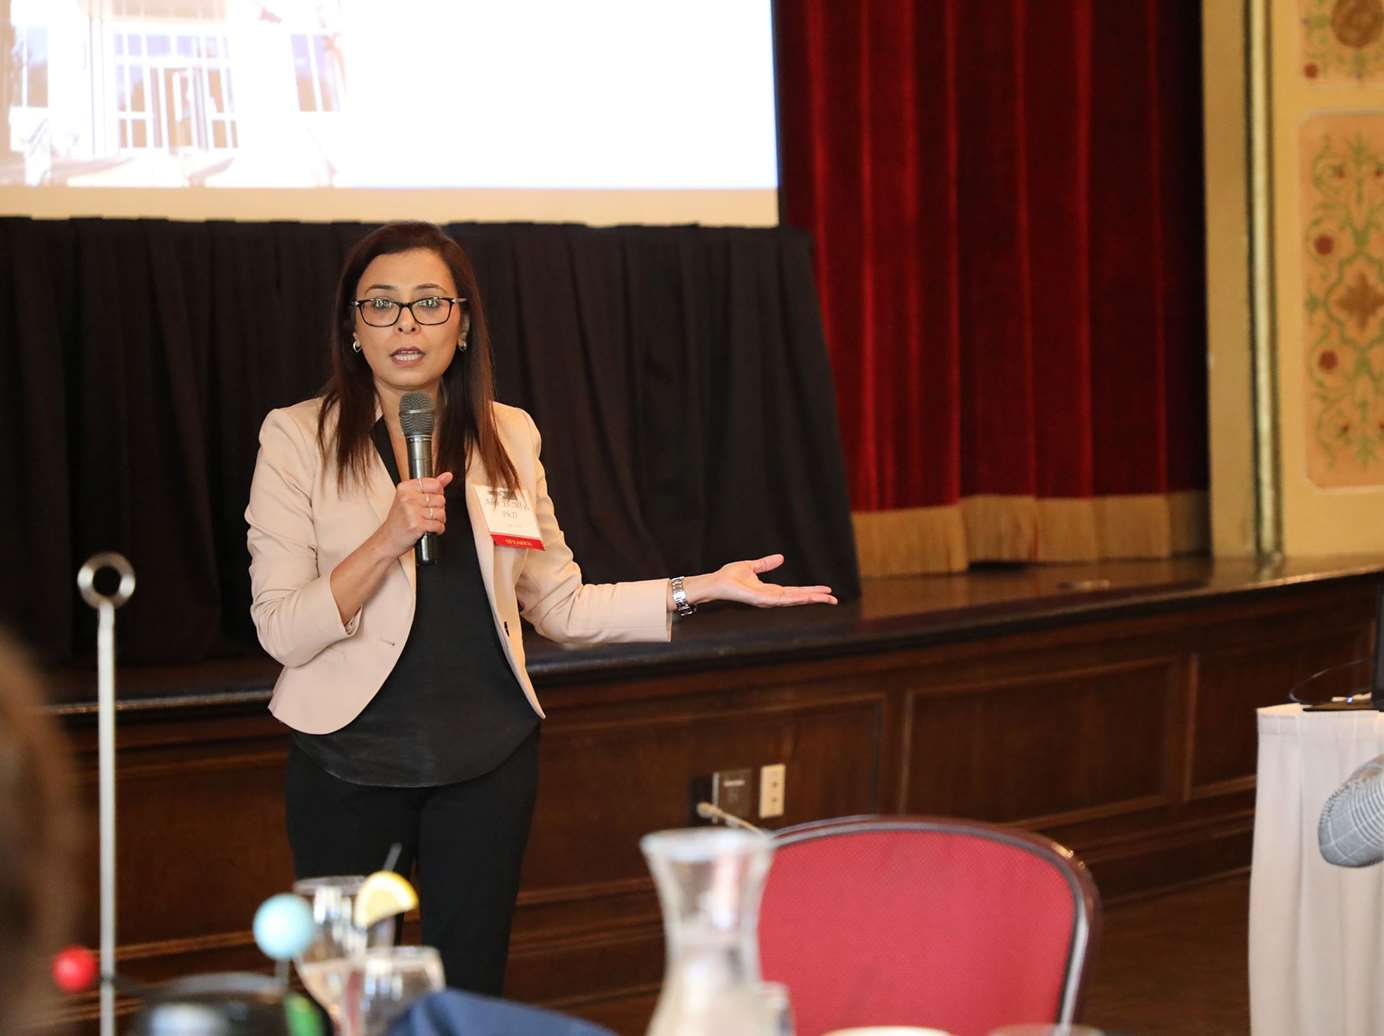 Abir T. El-Alfy, PhD, MS, speaks about addiction at MCW Women in Science presentation